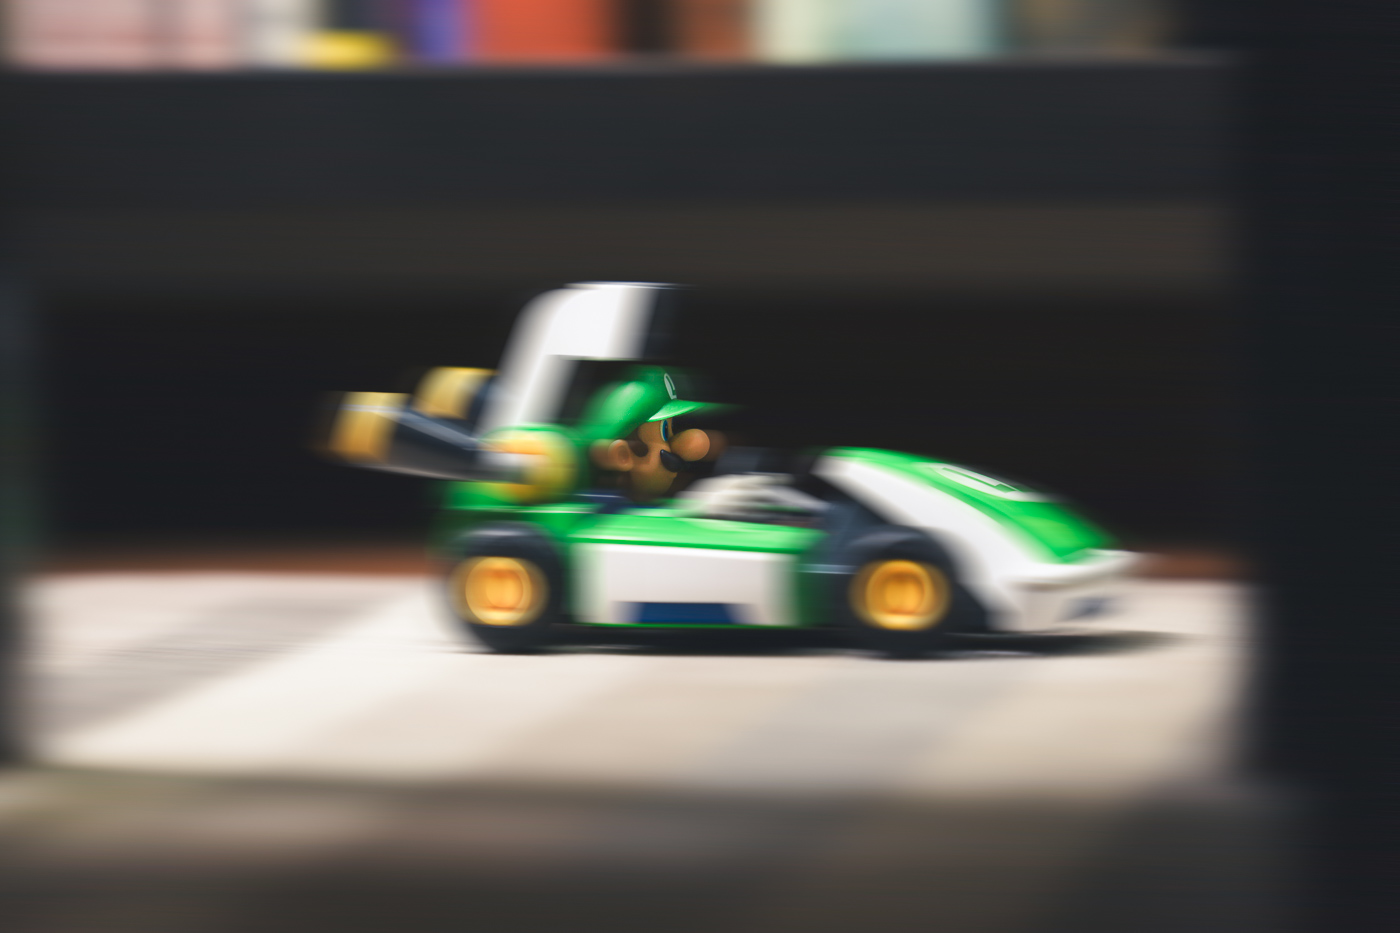 The charm of speed in Mario Kart